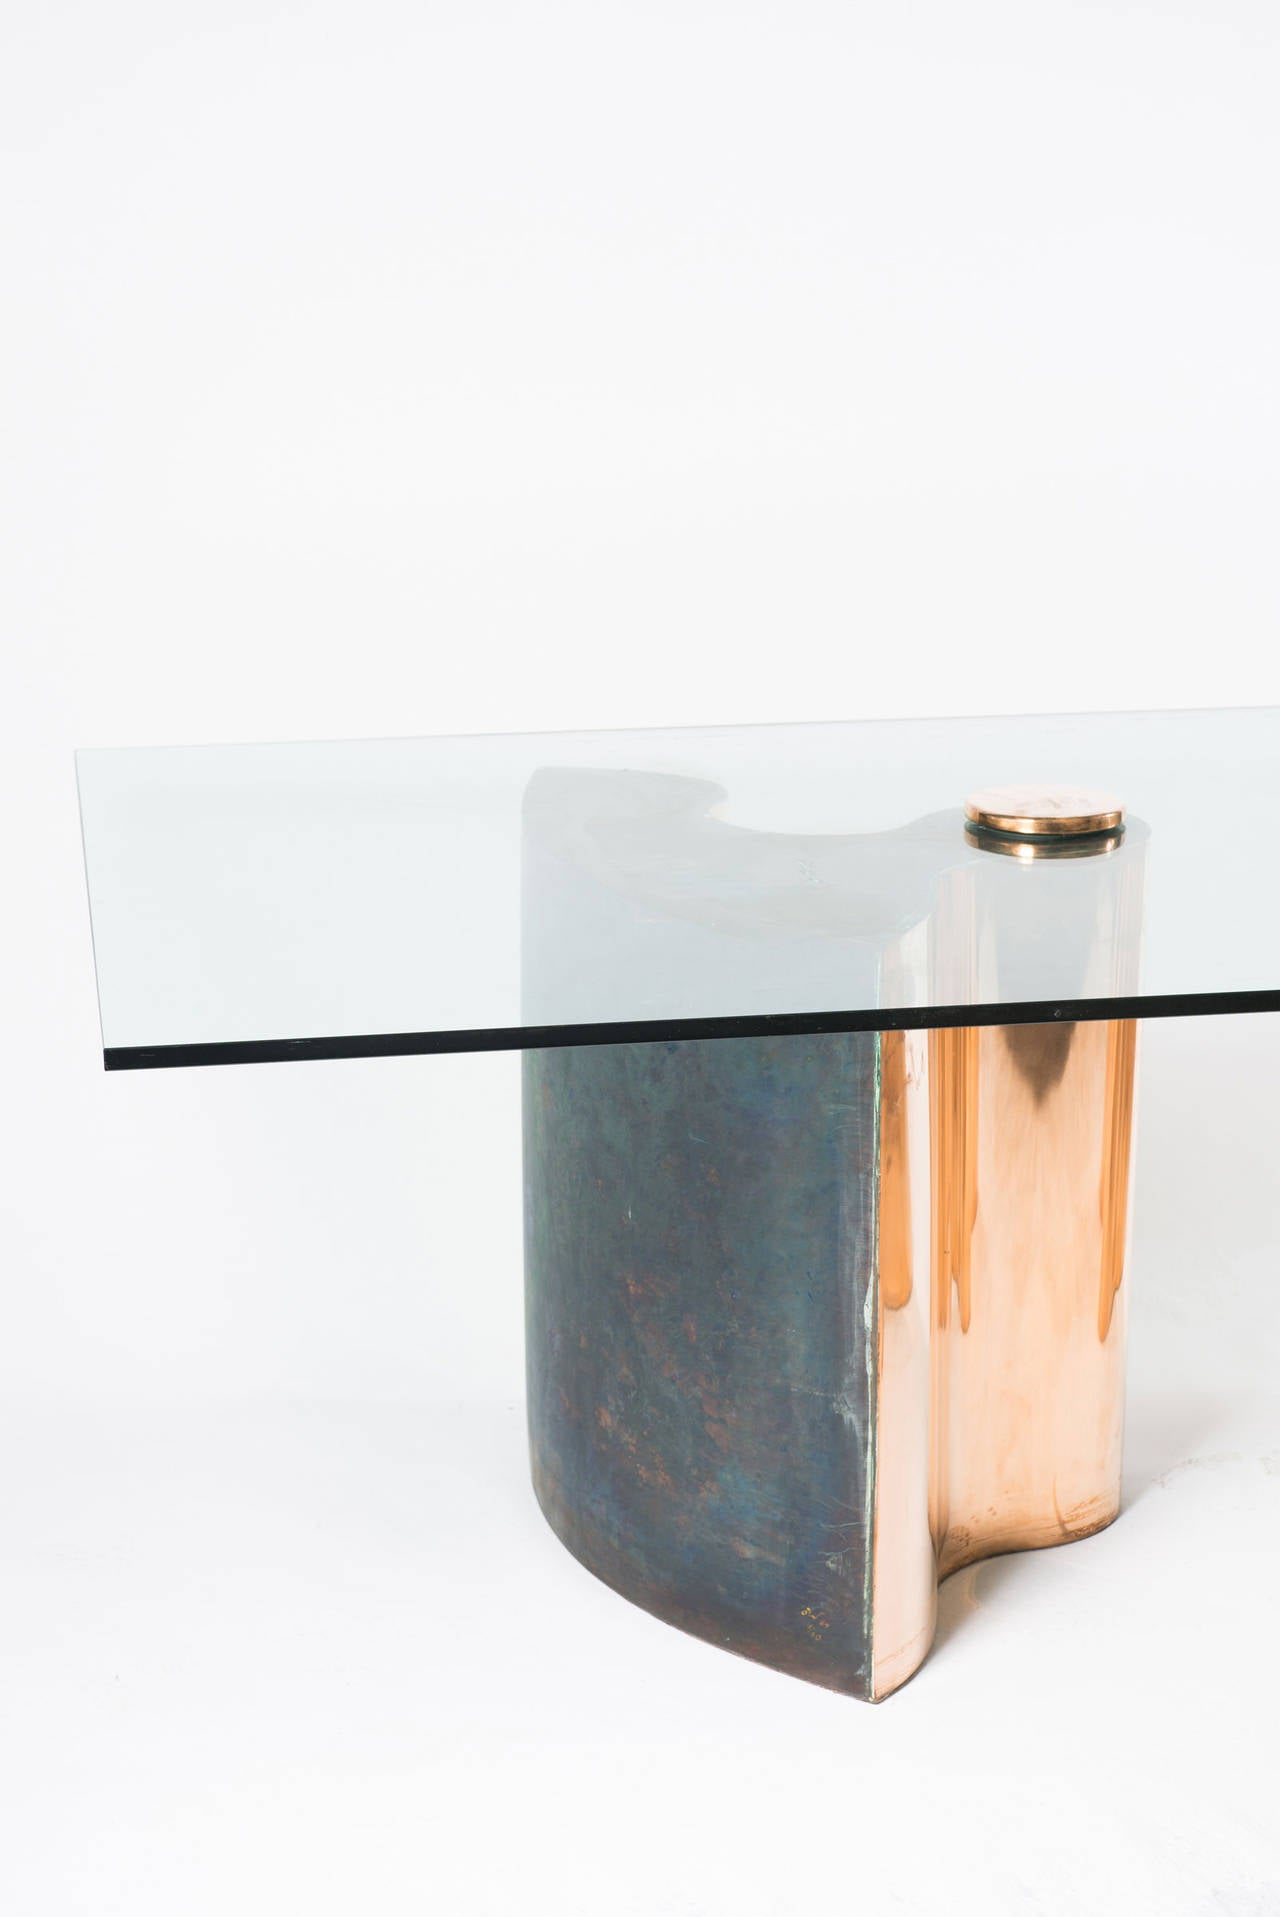 Unique dining table, dated 1984 cloud shaped bases made of copper-plated brass.